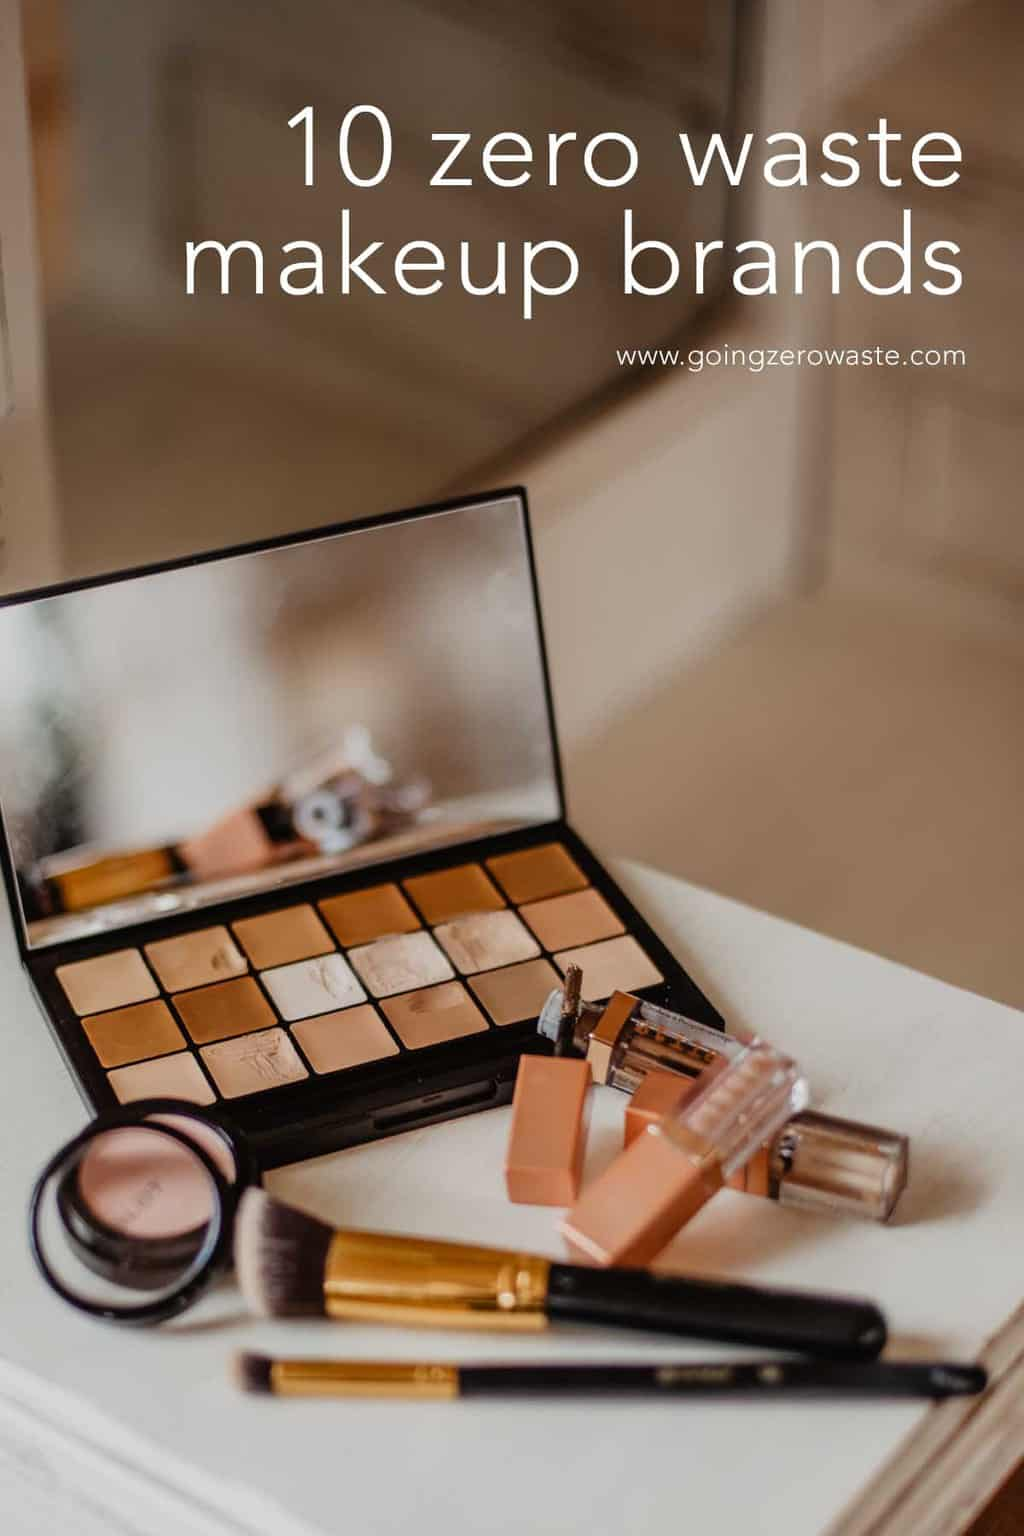 17 Zero Waste Makeup Brands